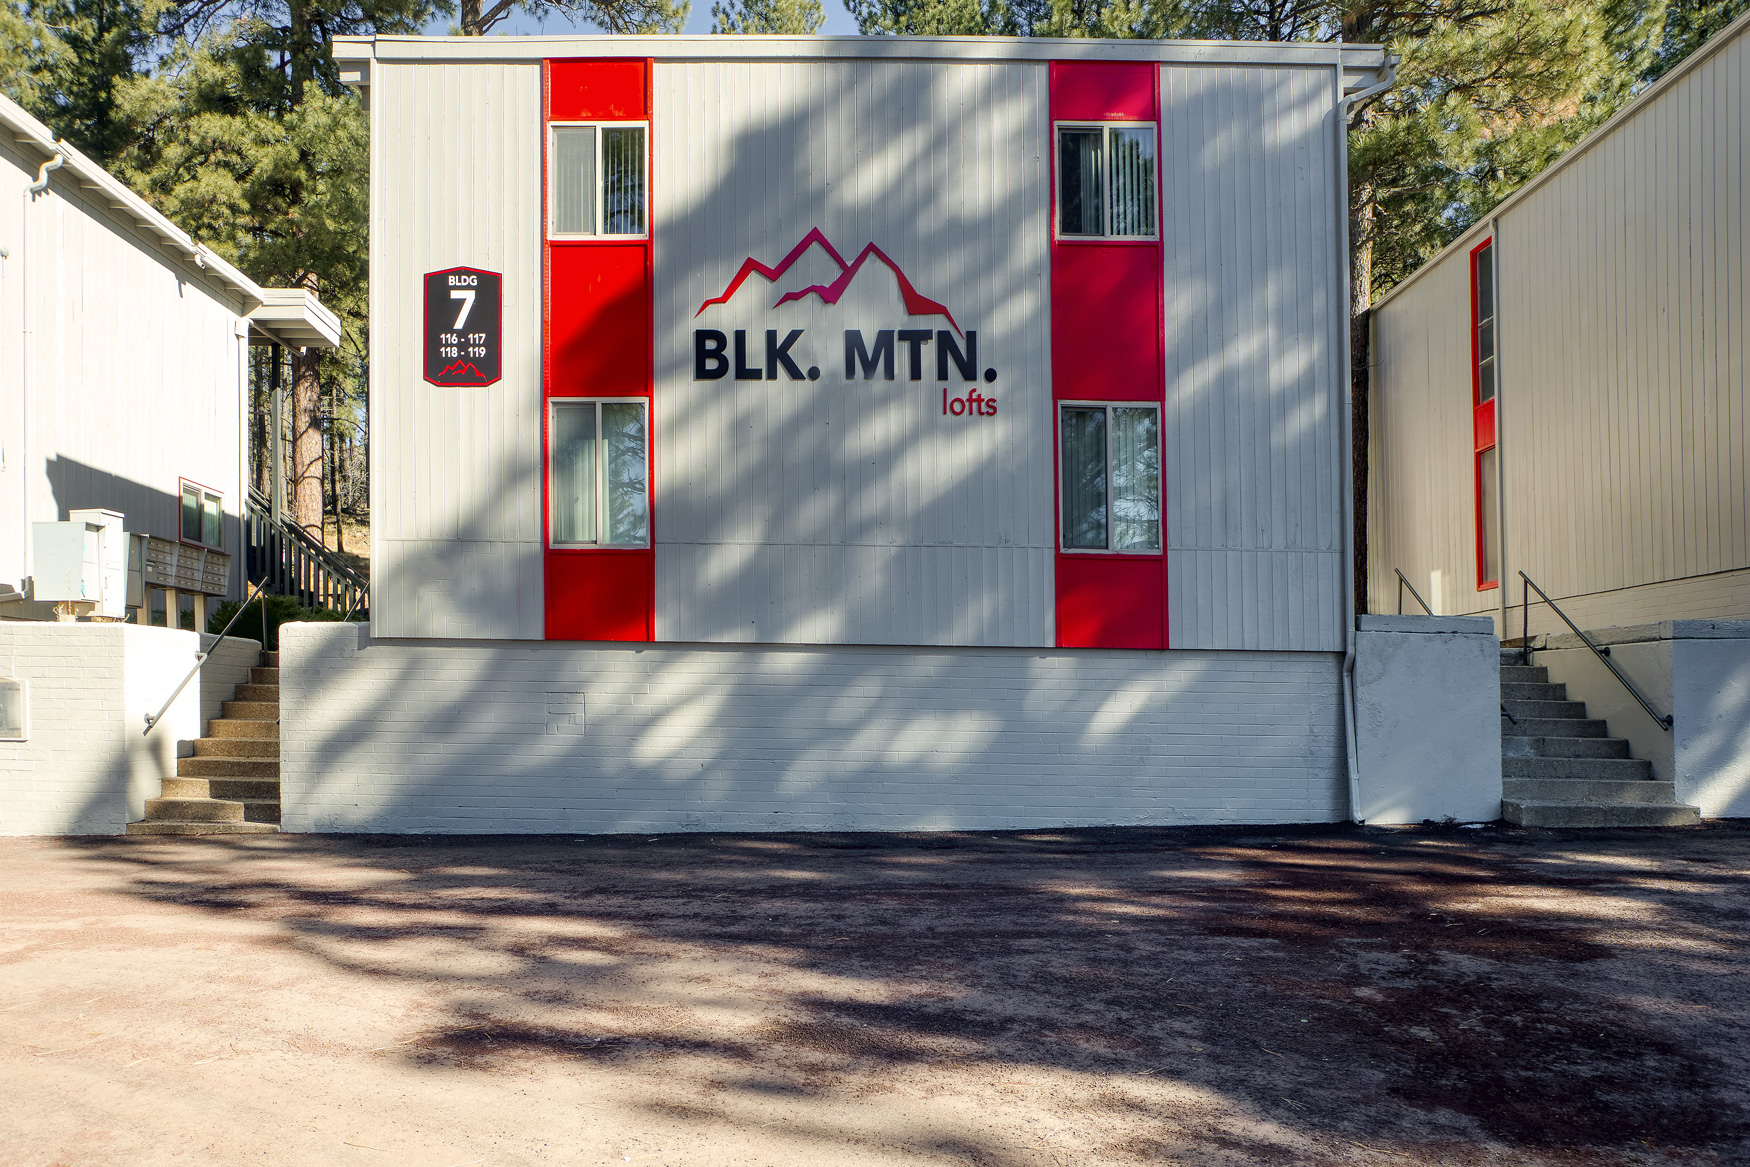 Pet-Friendly Apartments at Blk. Mtn. Lofts Apartments in Flagstaff, Arizona